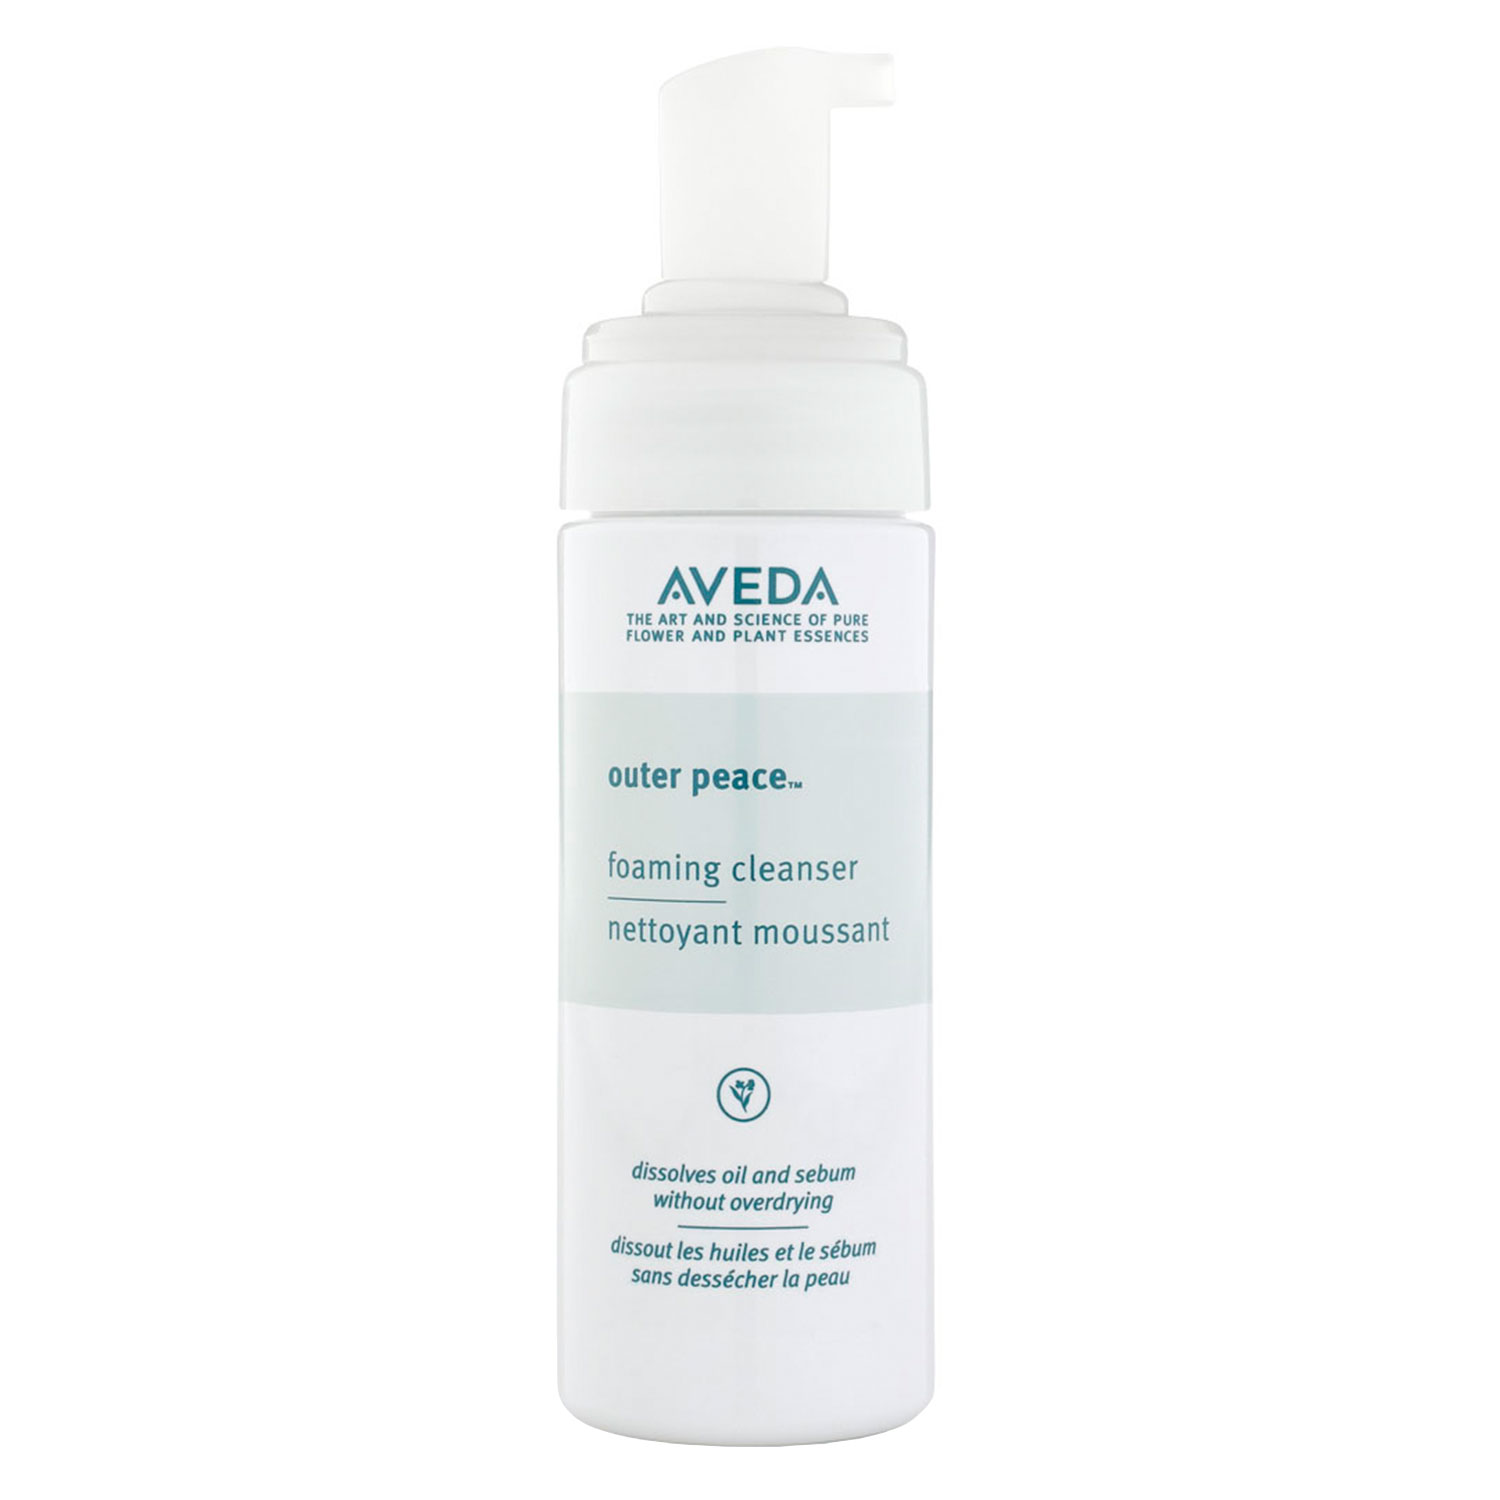 outer peace - foaming cleanser - 125ml